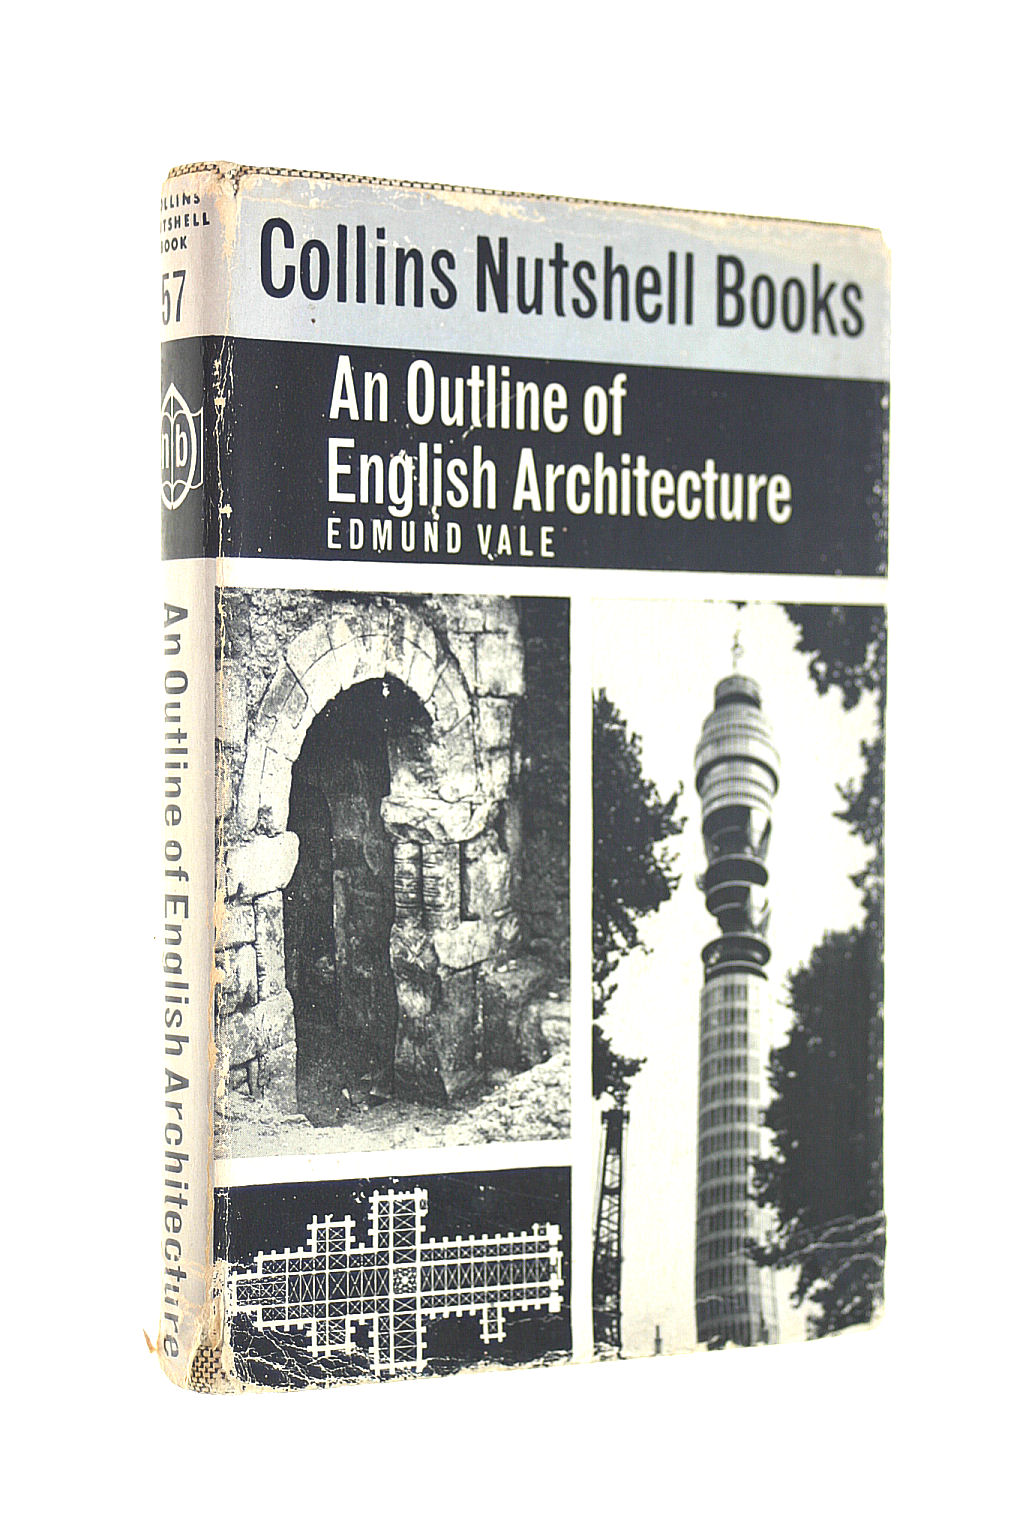 Image for An outline of English architecture (Nutshell books;no.57)